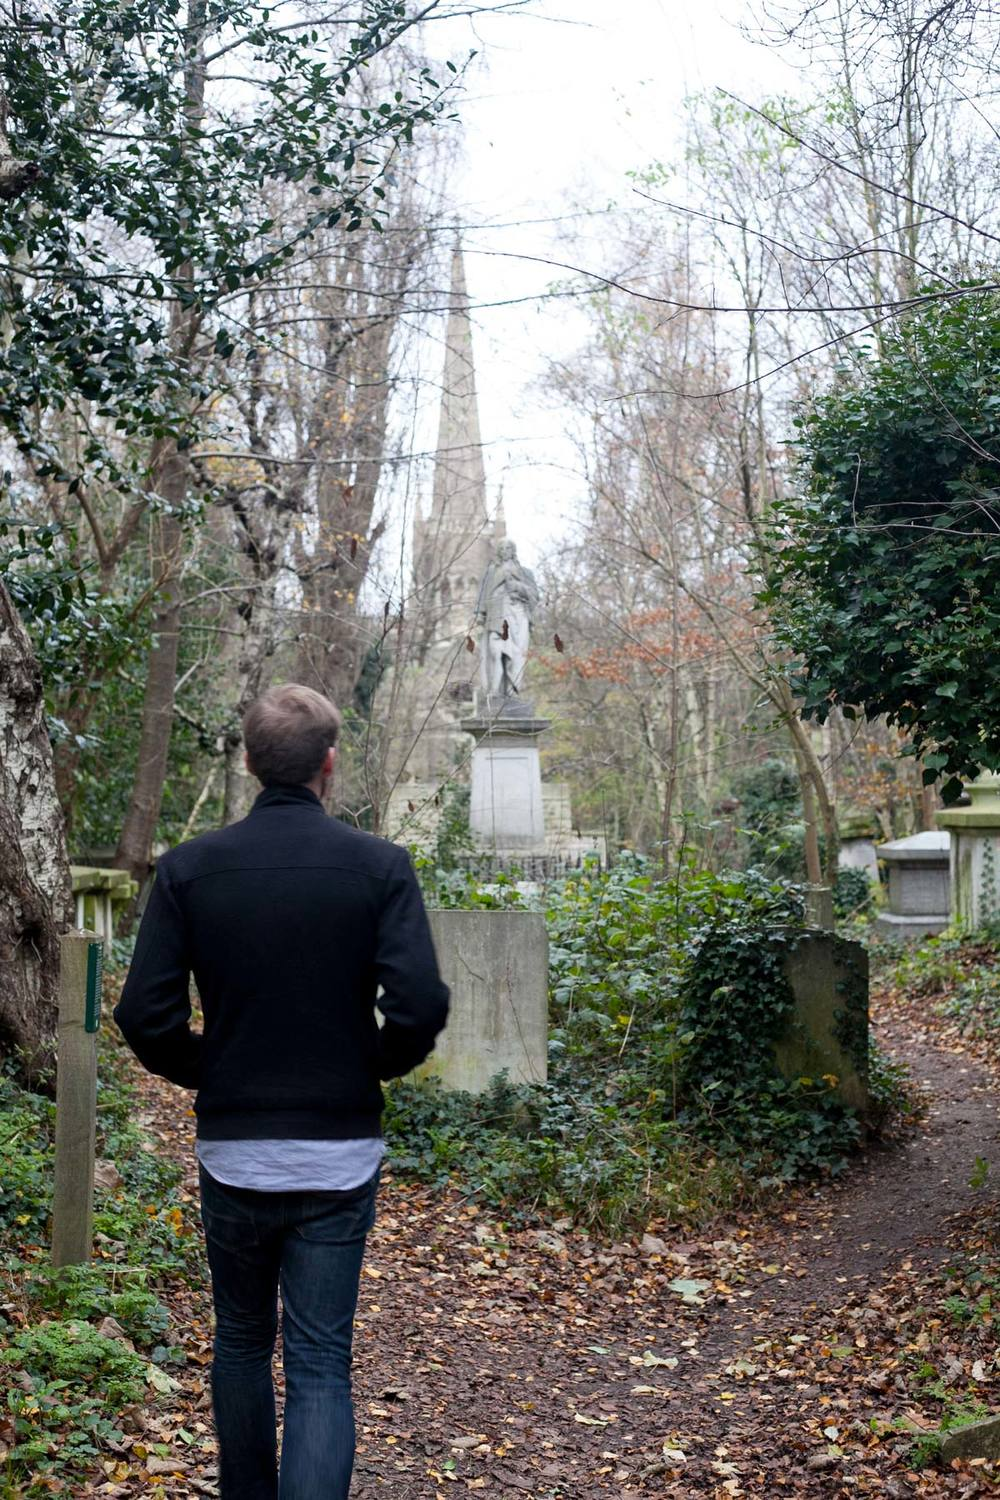 Abney Park Cemetery, founded 1840